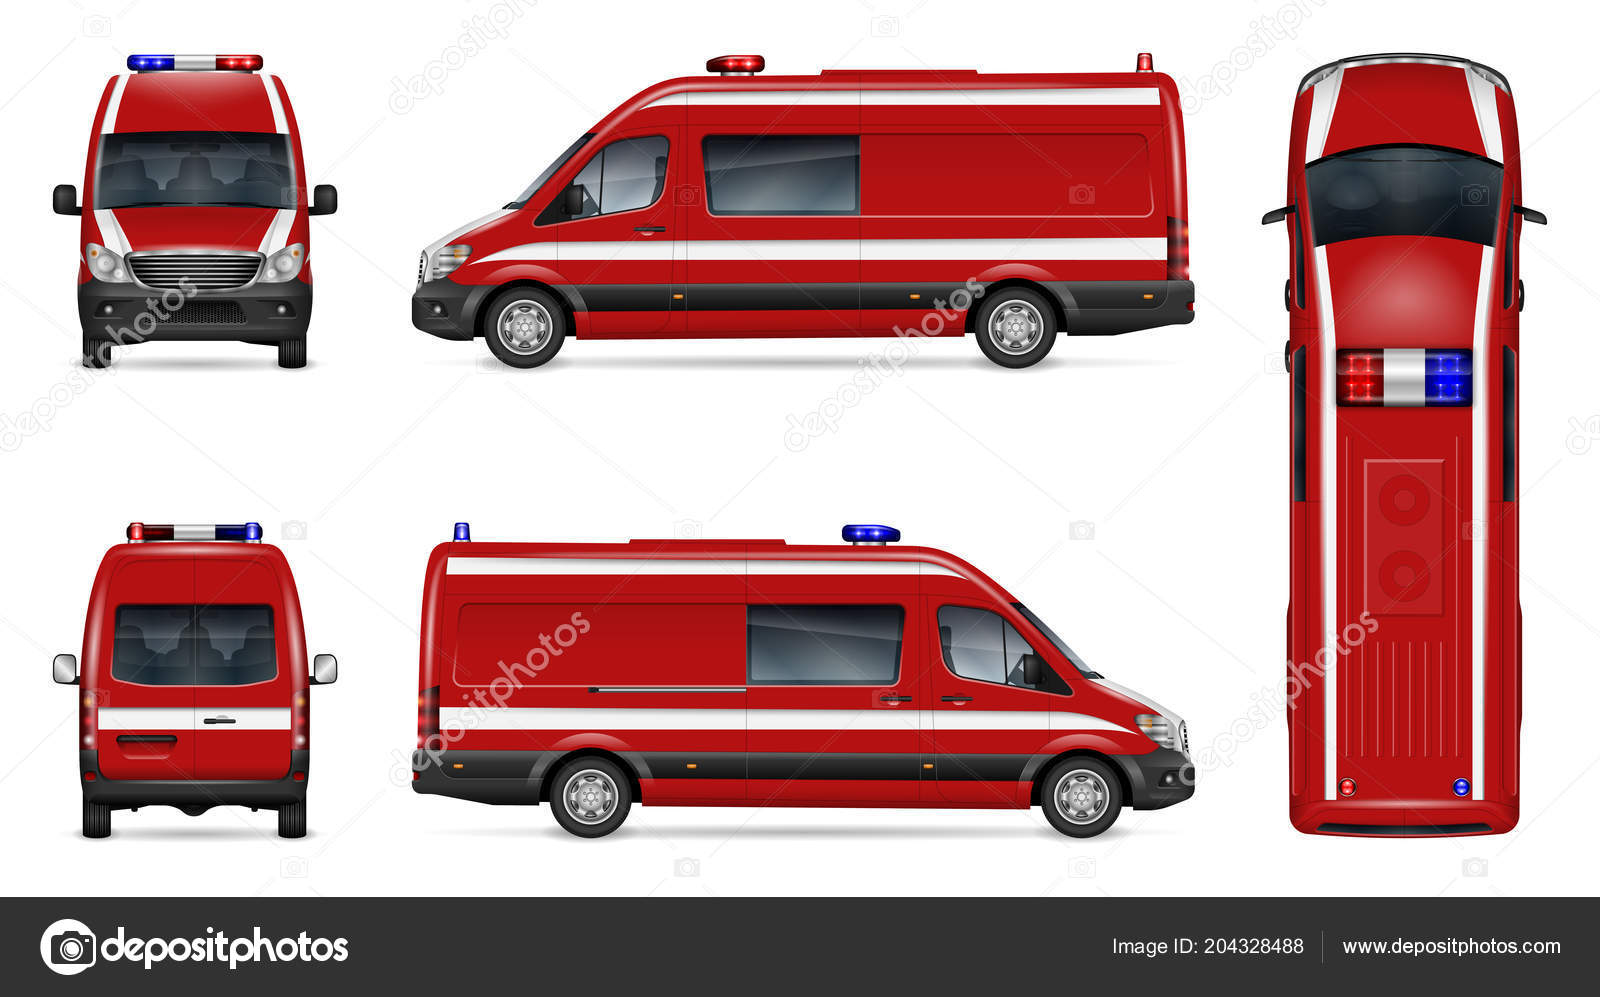 fire engine vector mockup white background isolated template red van